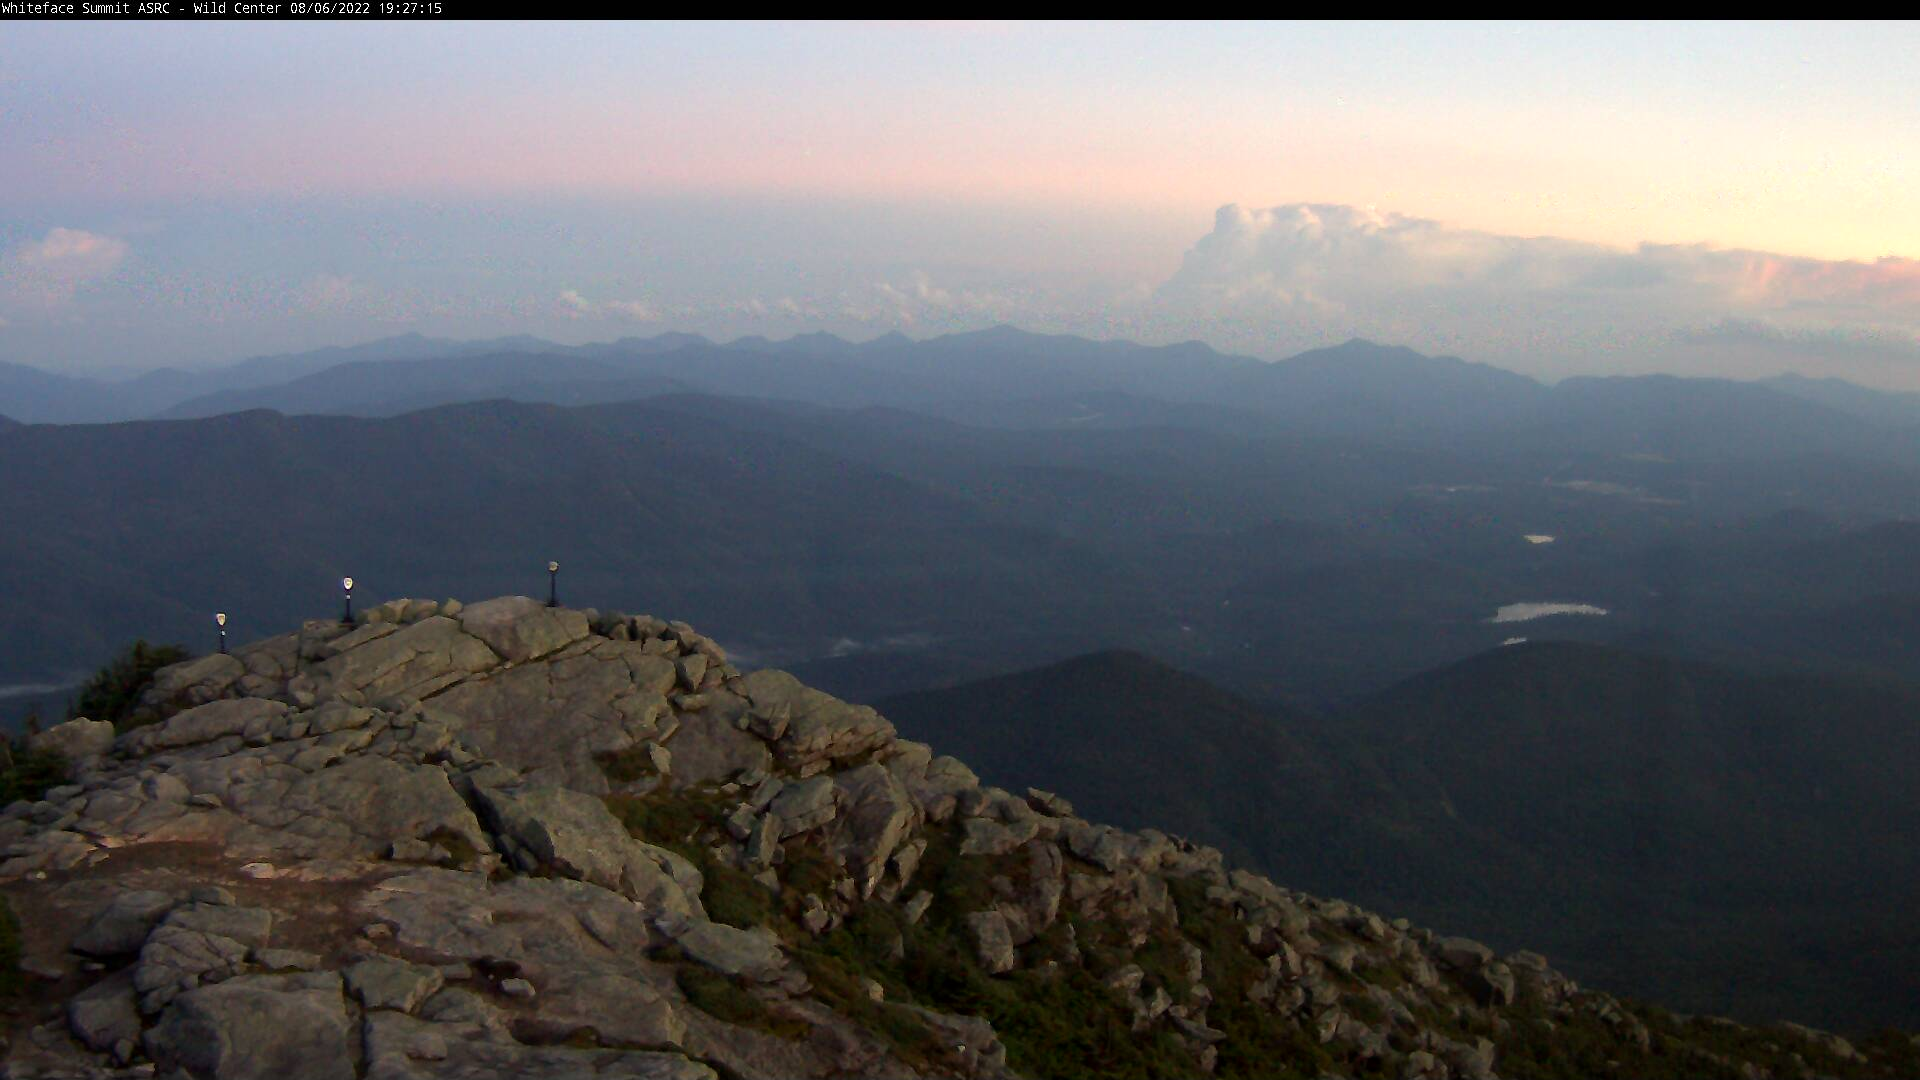 Whiteface Mountain Summit Webcam